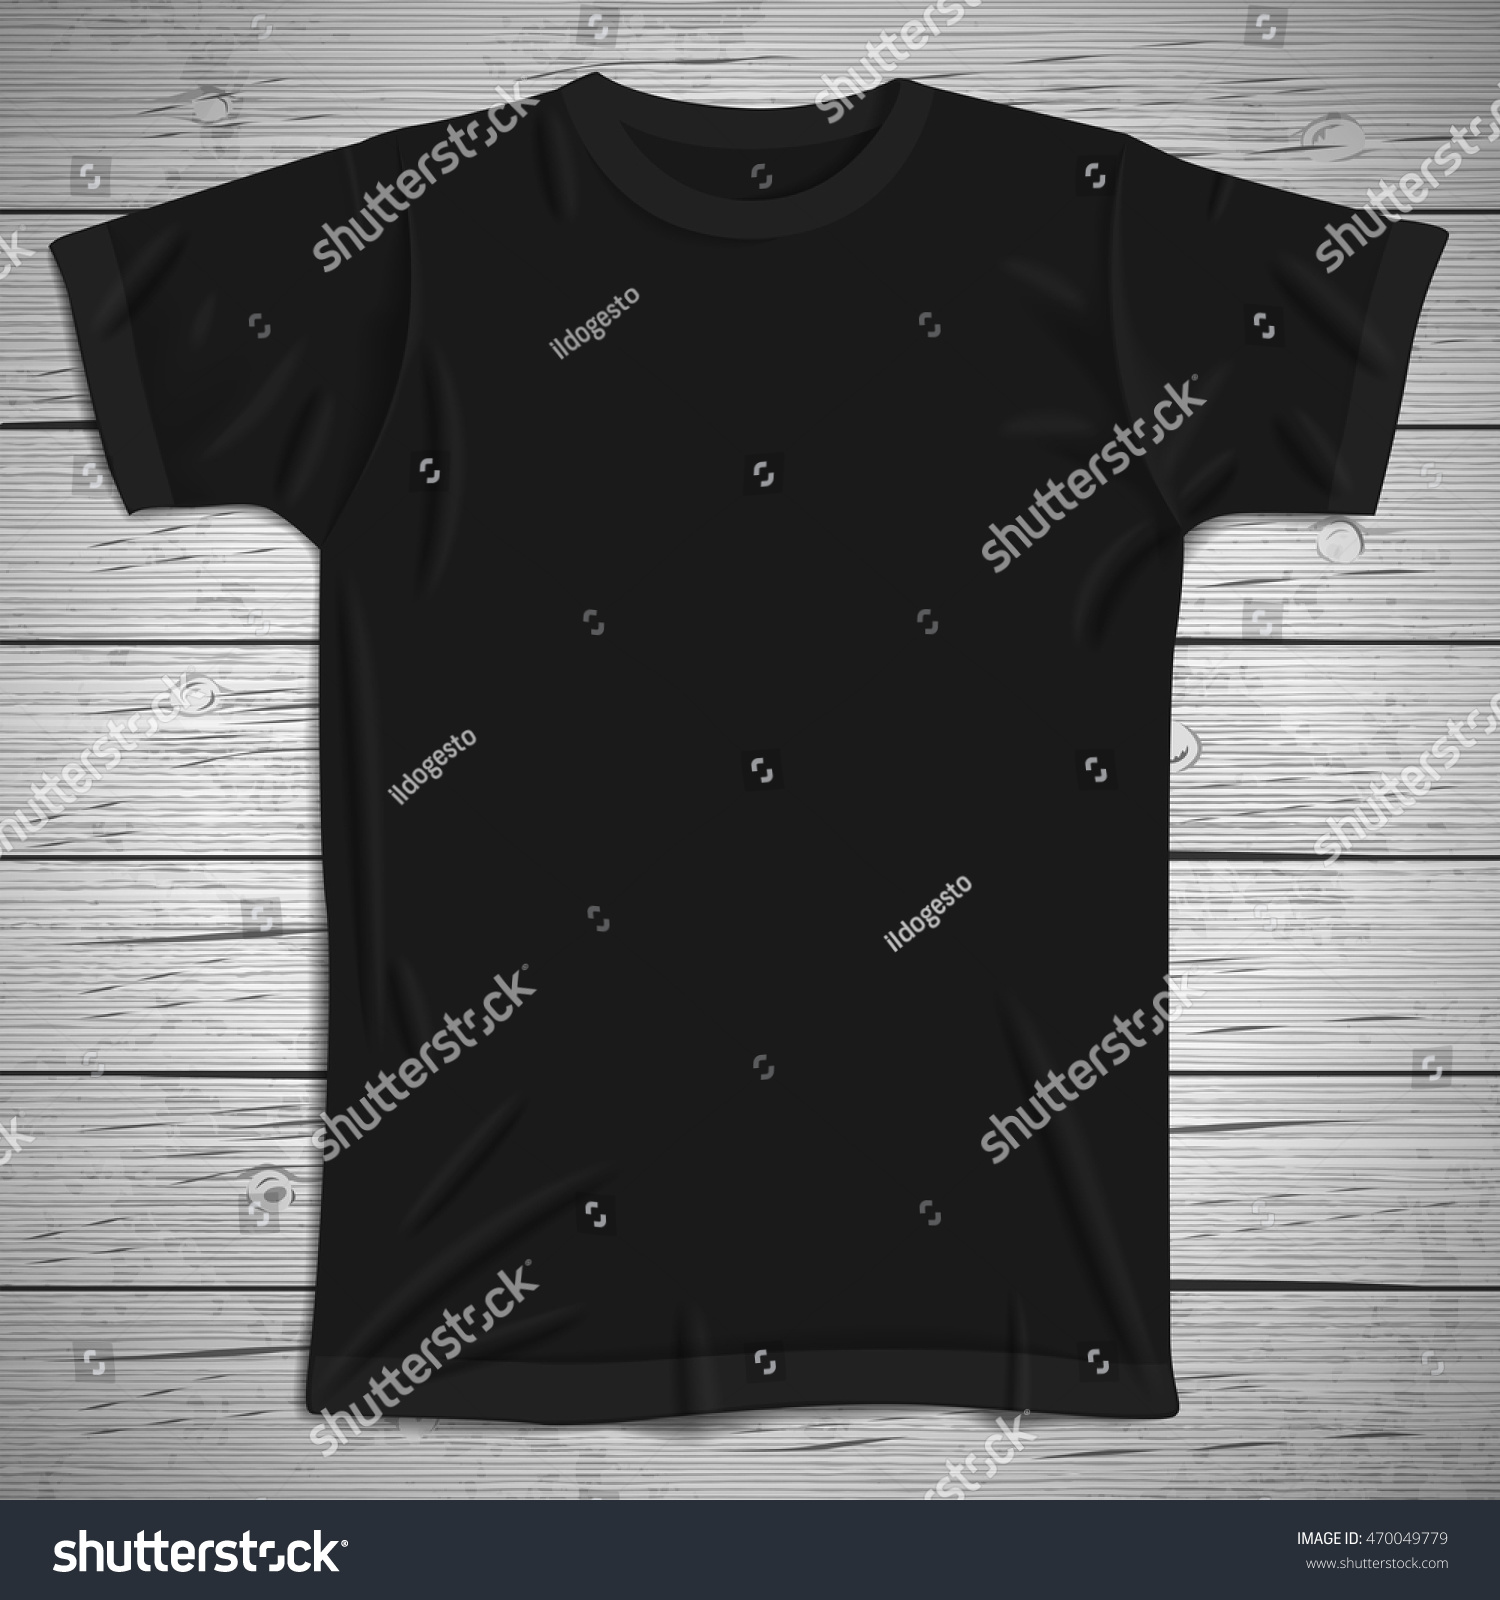 Black t shirt vector photoshop - Vintage Background With Blank T Shirt Vector Illustration